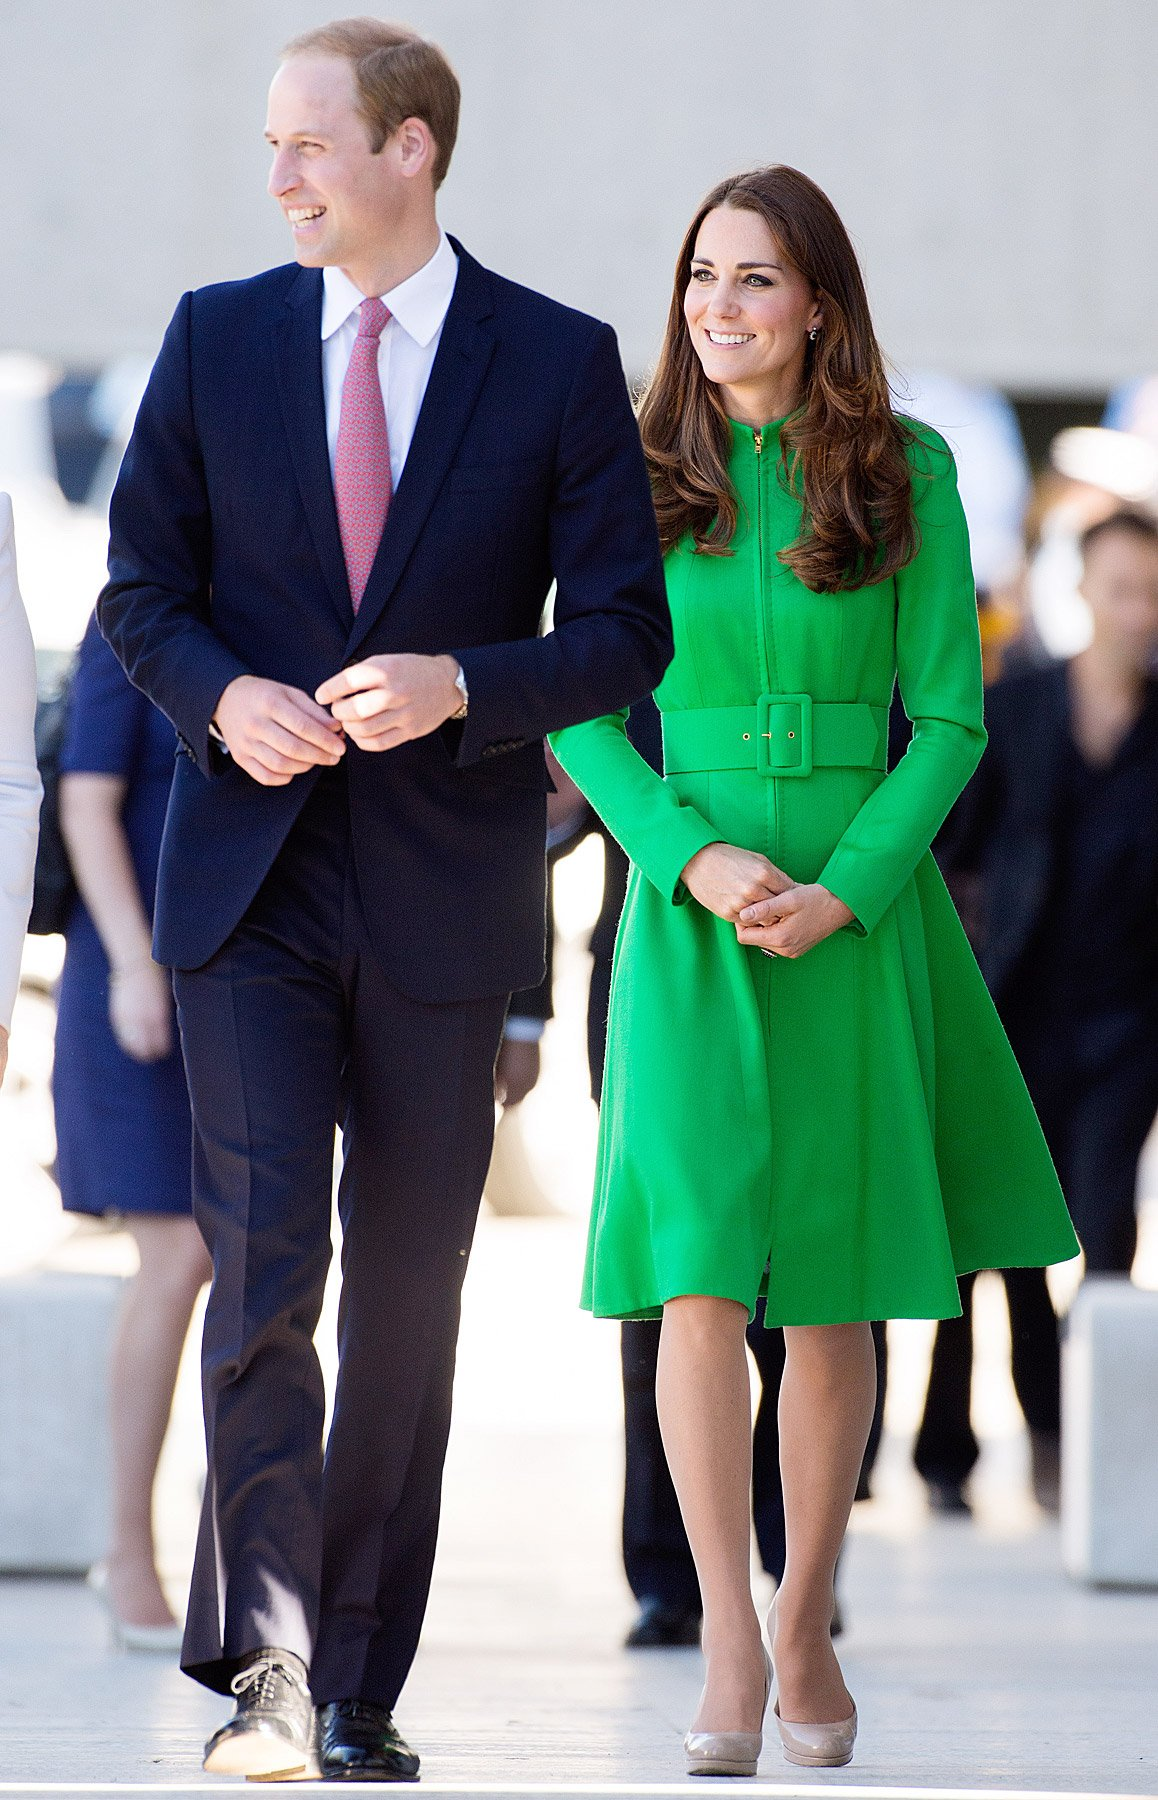 Prince William To Meet Barack Obama At White House